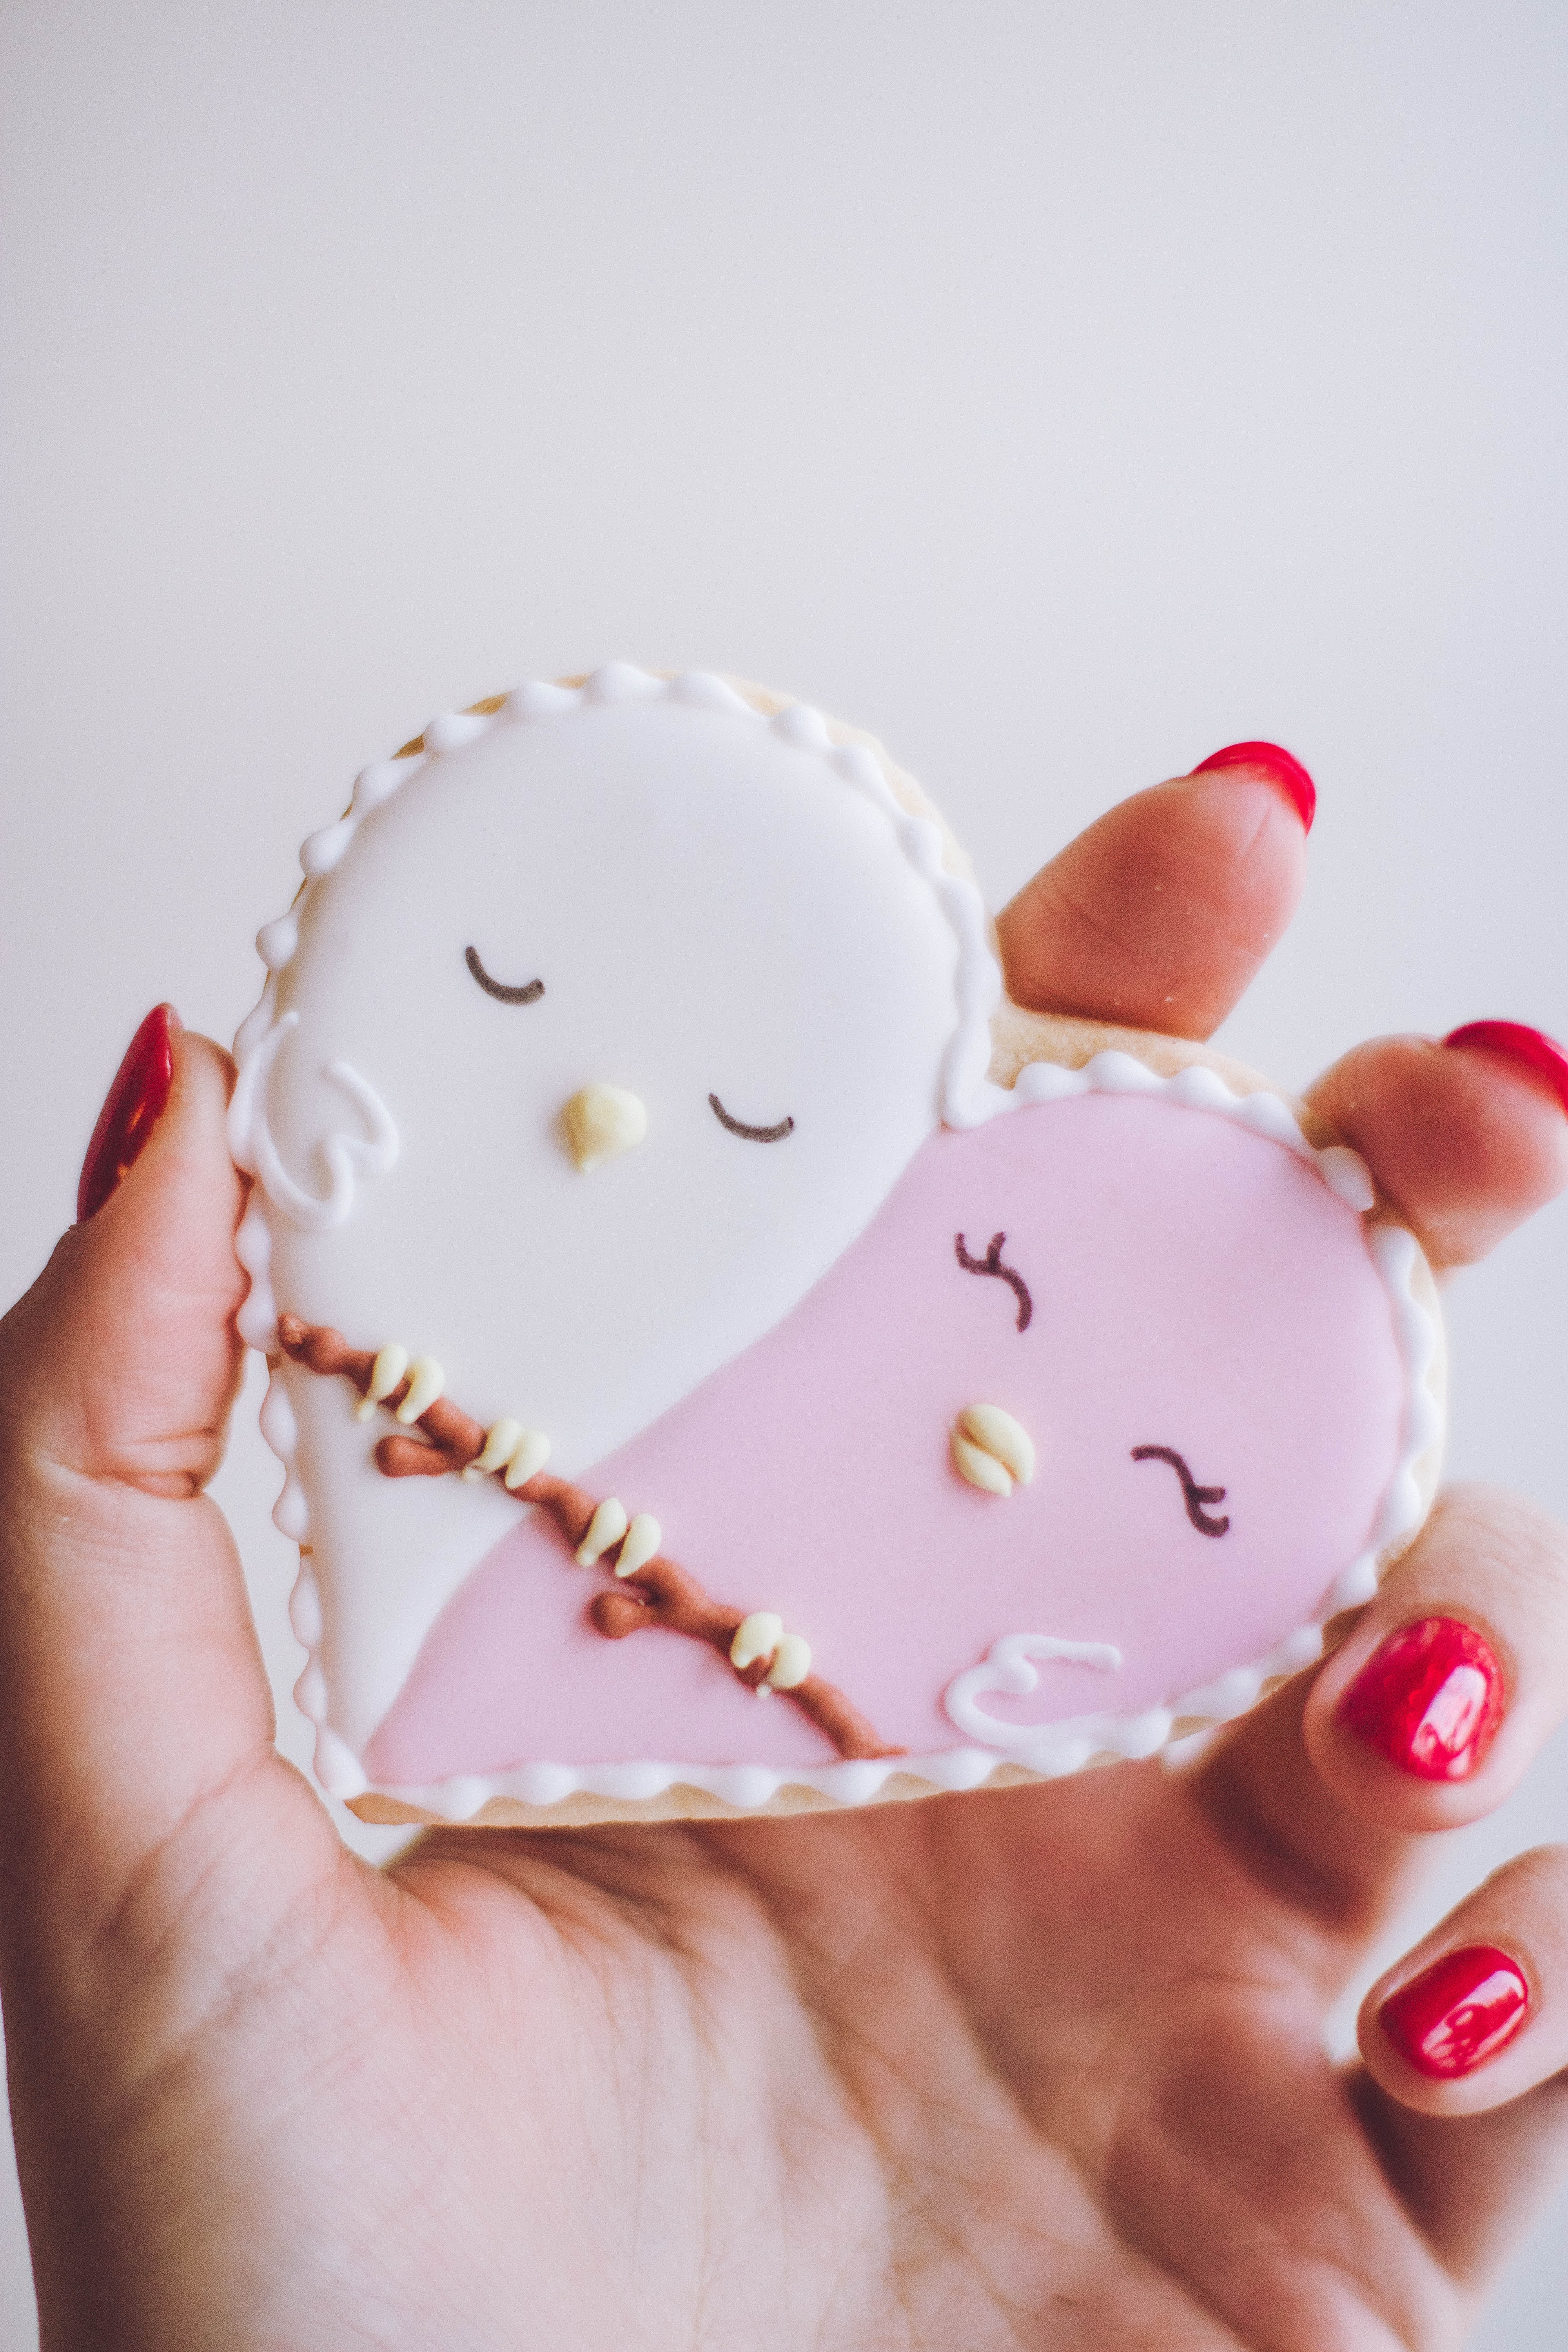 Person Holding White and Pink Heart Figure, Close-up, Colors, Cookie, Cute, HQ Photo